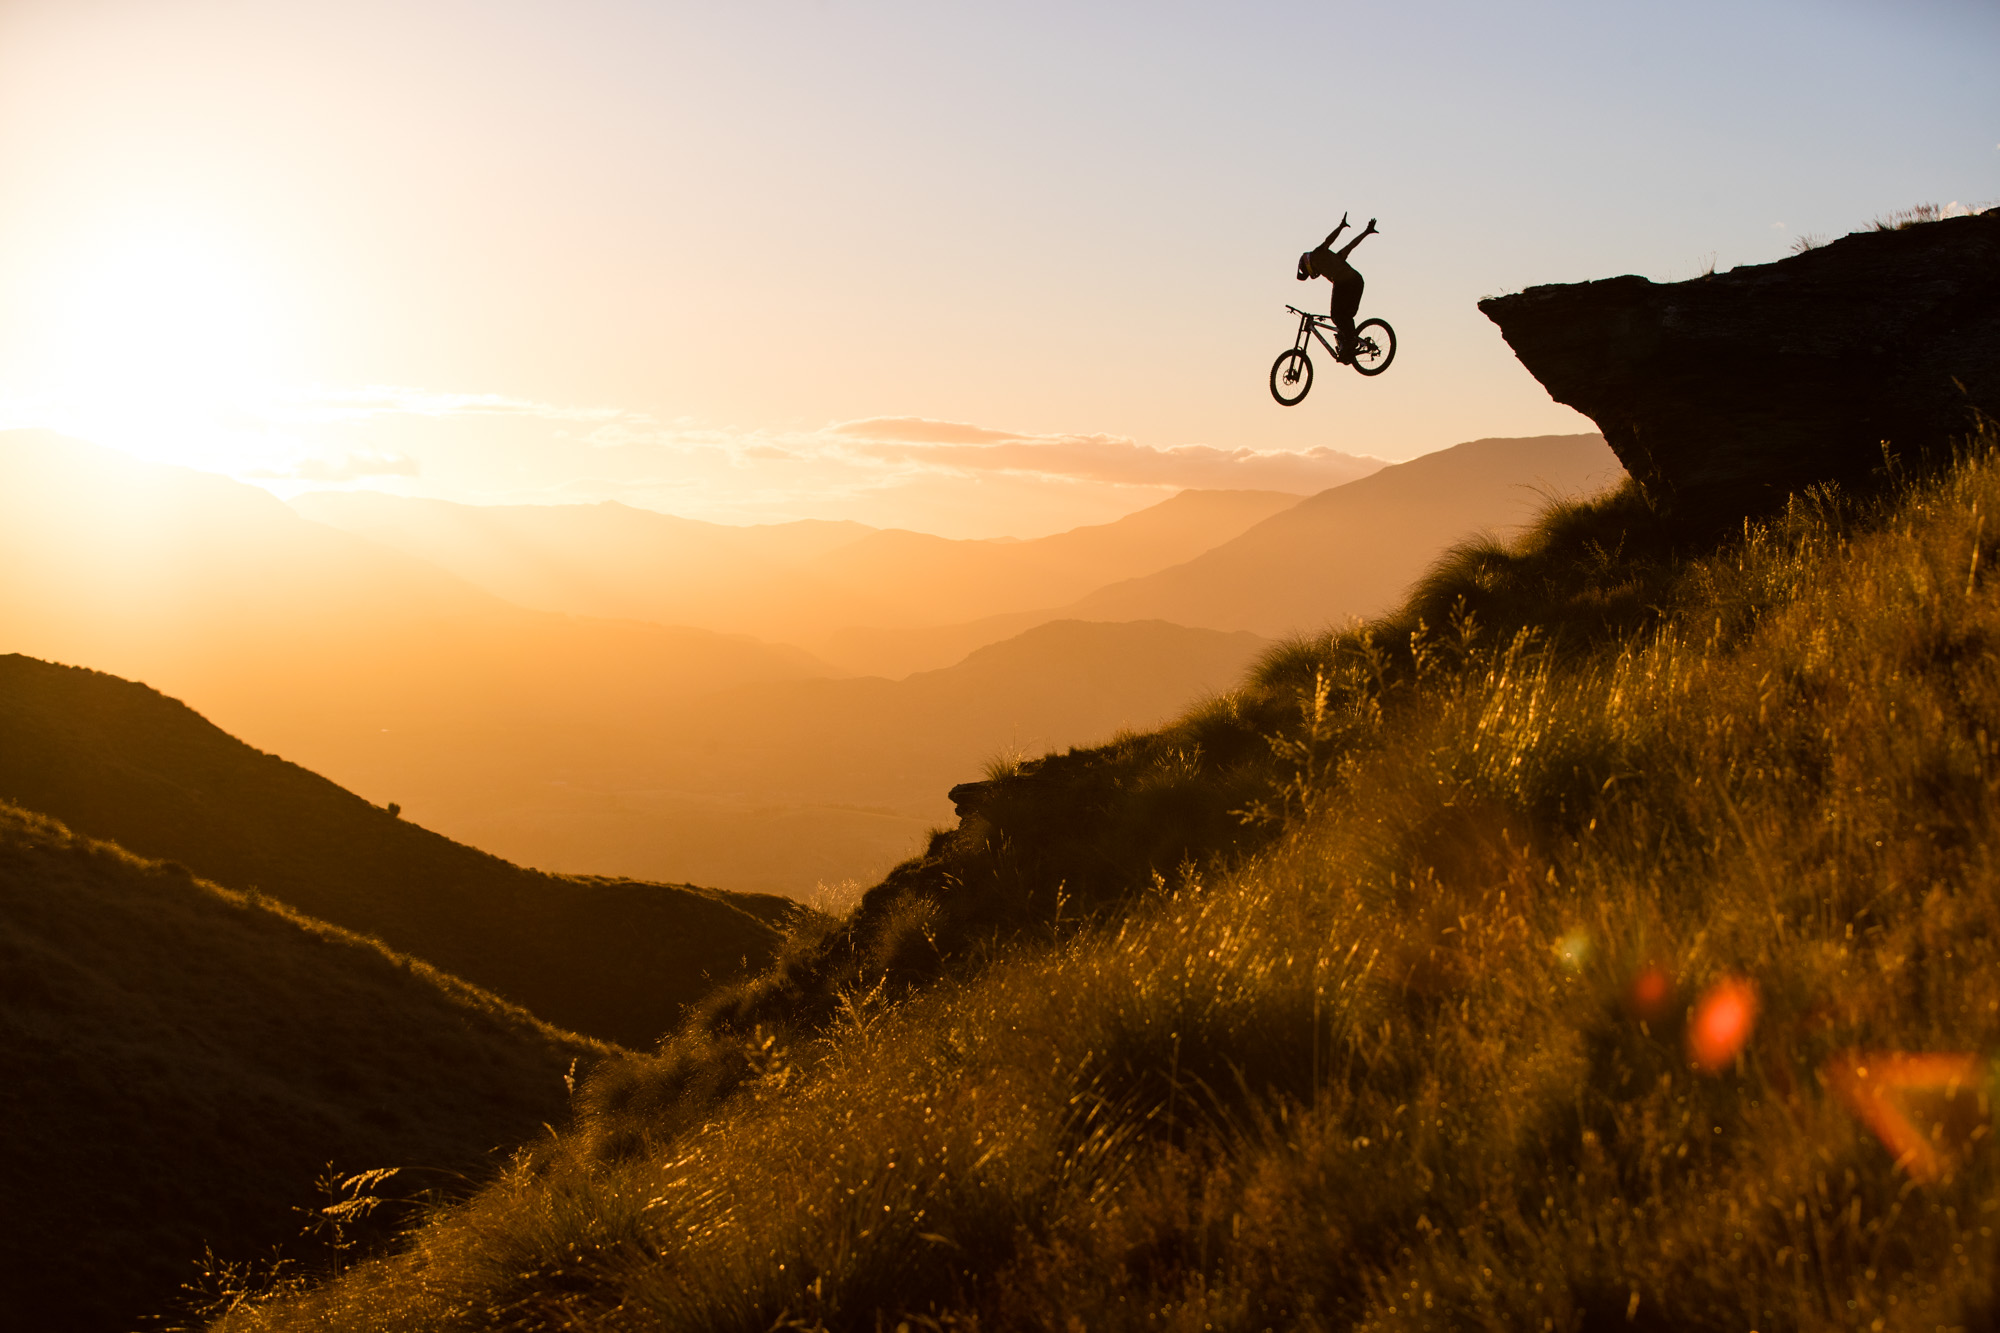 Mountain Bike Photography | Outdoor Adventure Sports Photography